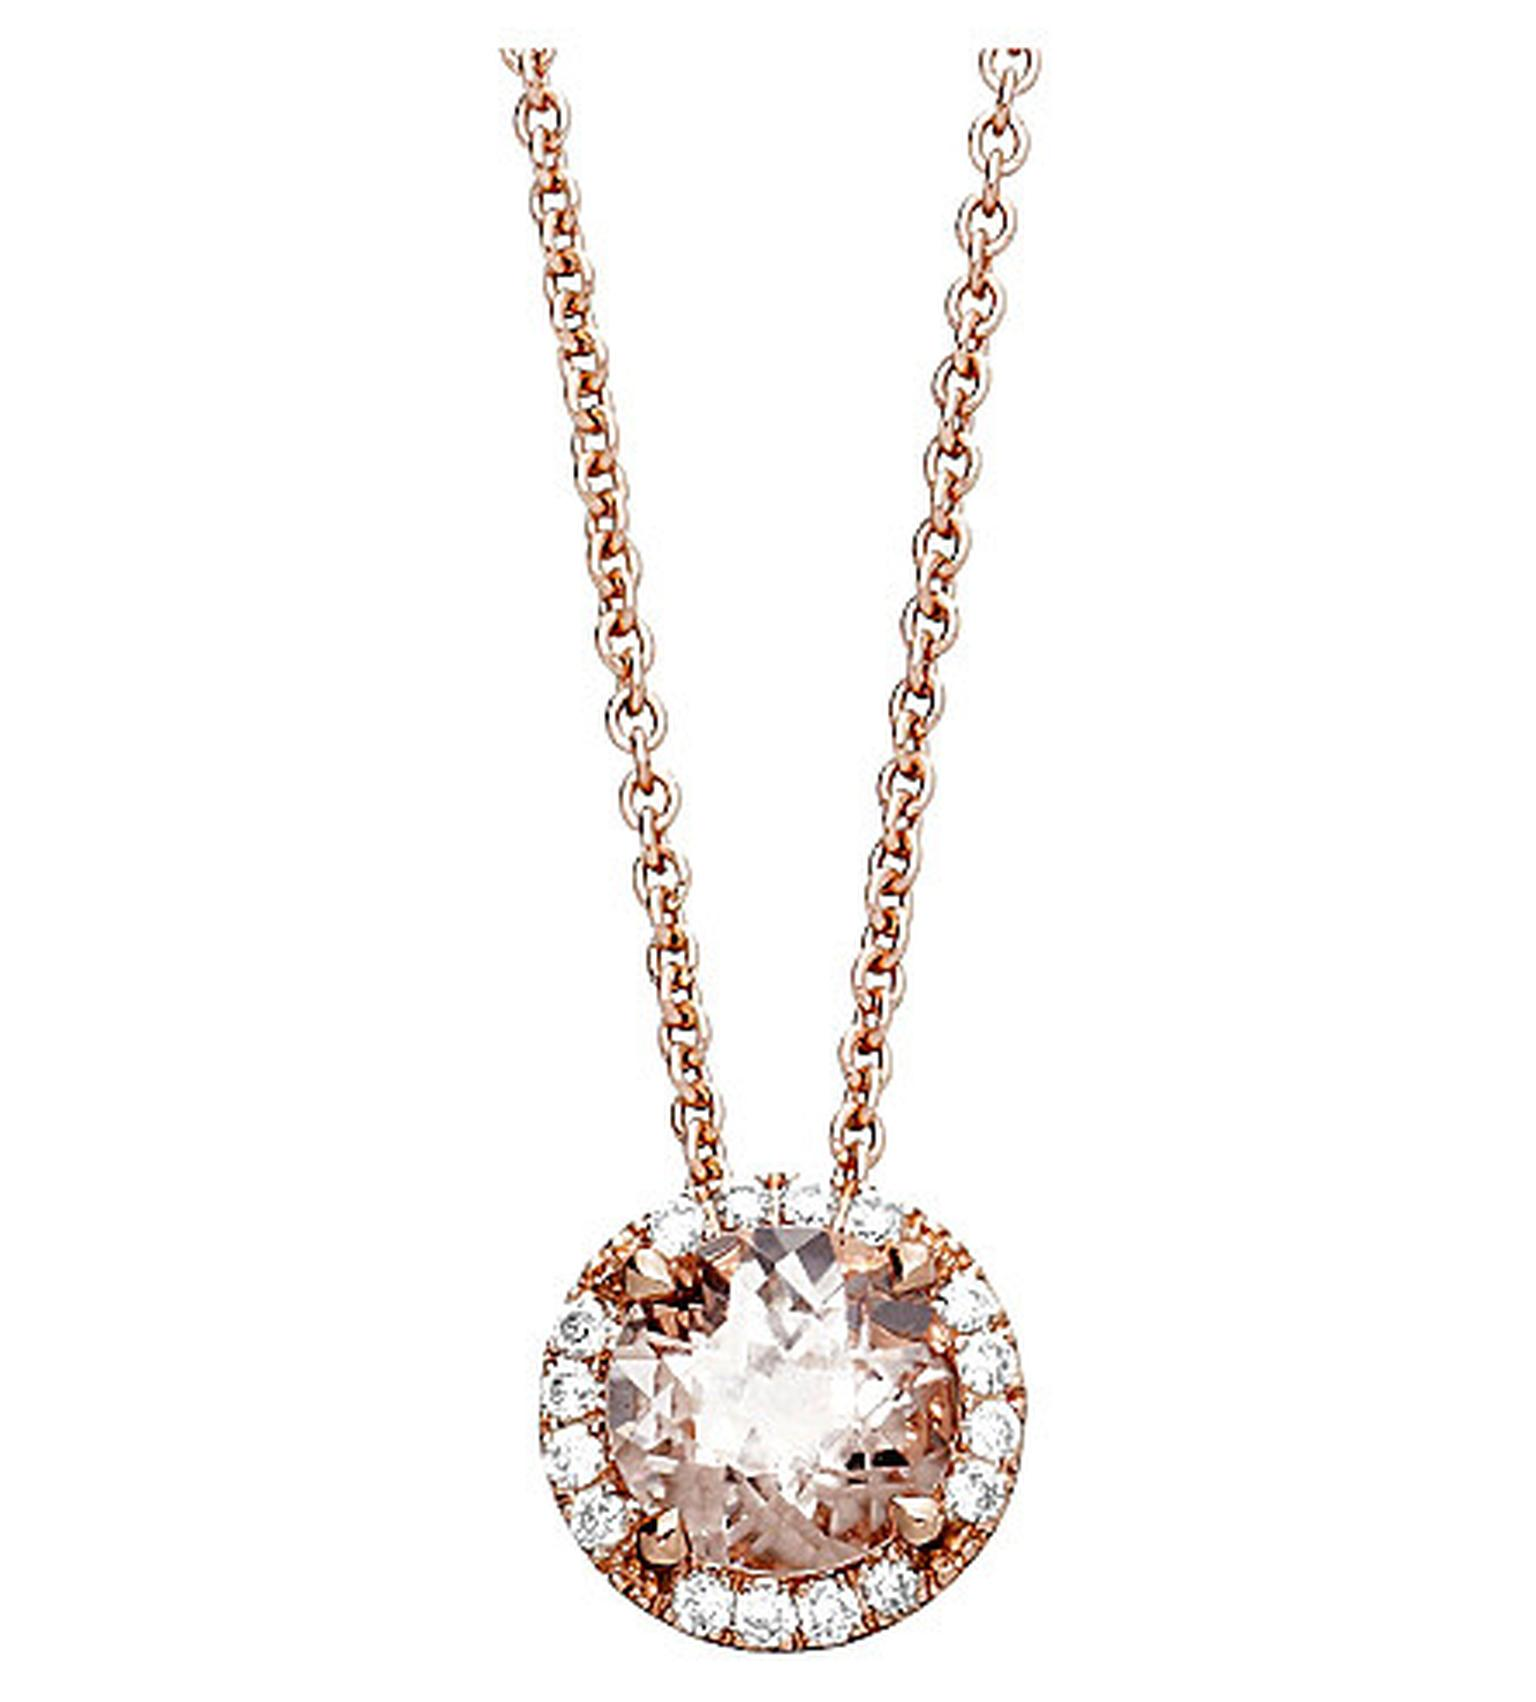 Astley Clarke Tearoom pendant featuring a round-cut morganite surrounded by diamonds set in rose gold (£1,250).